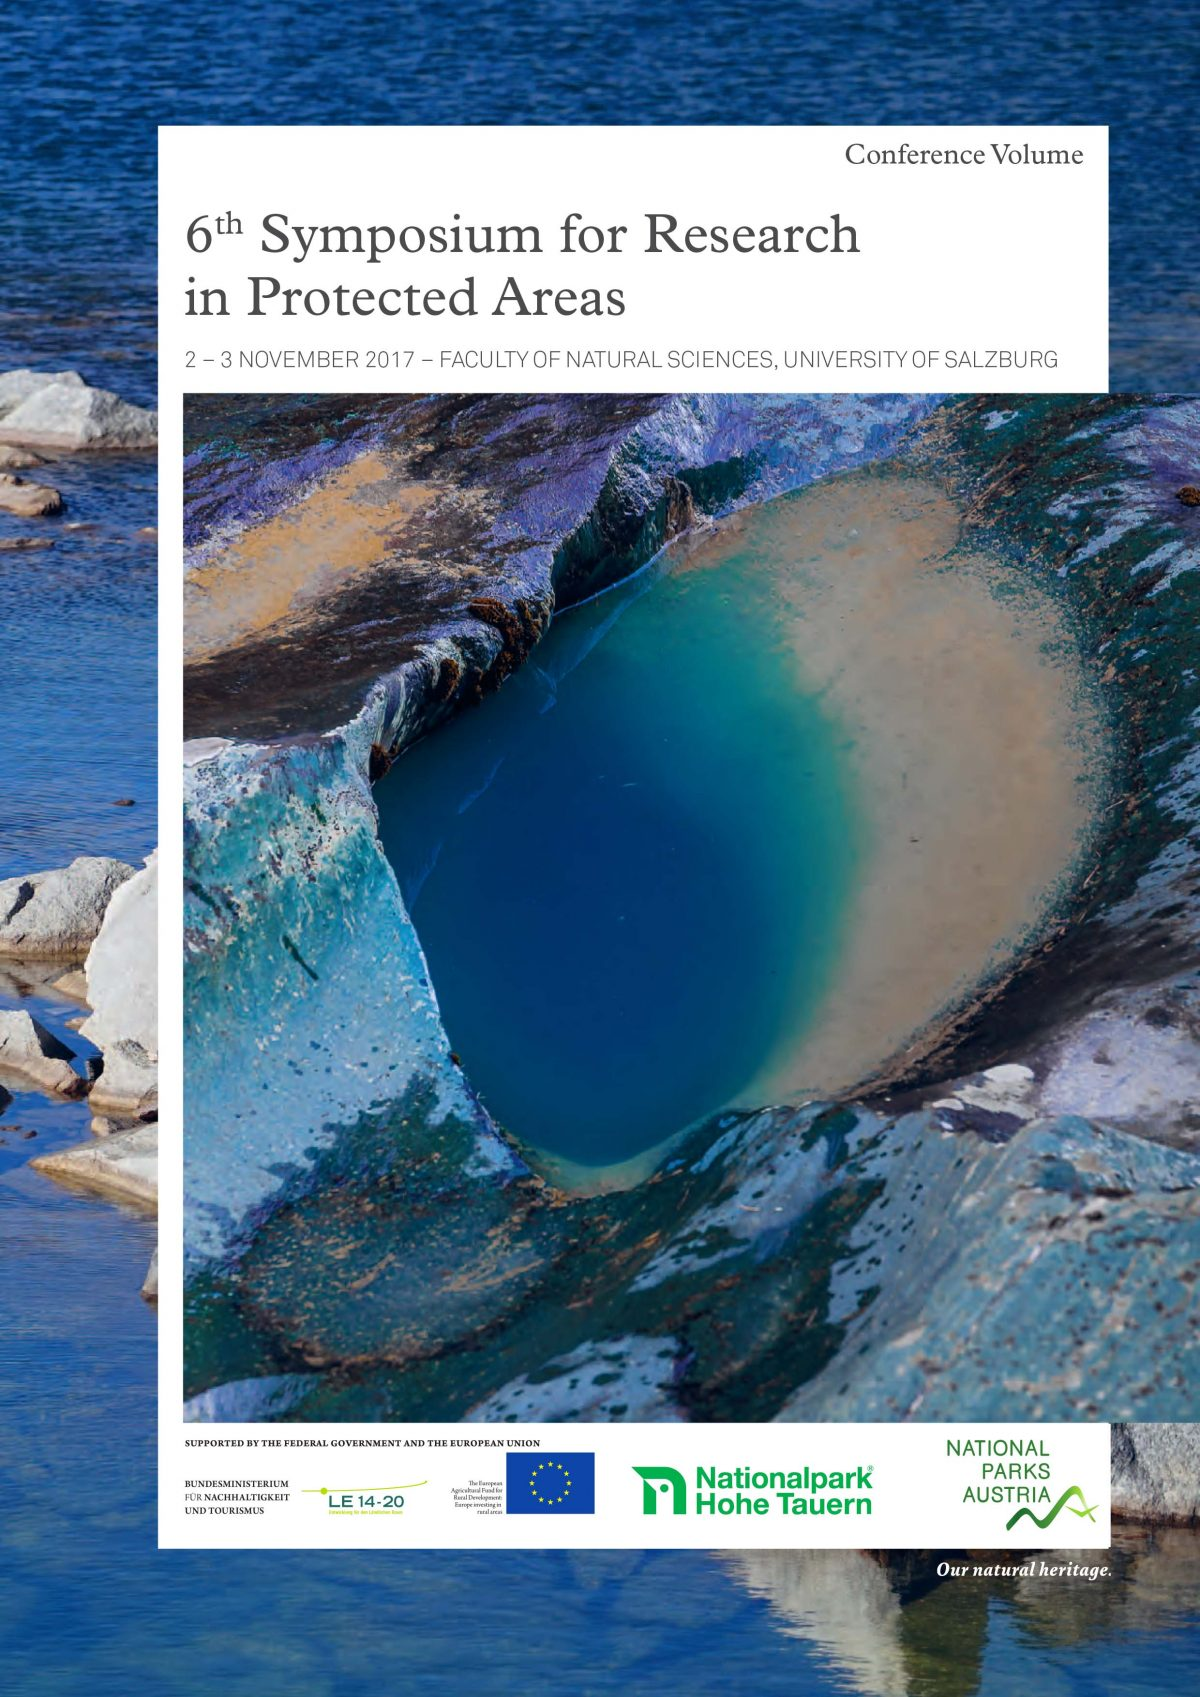 Book of Abstracts of the 6th Symposium for Research in Protected Areas released